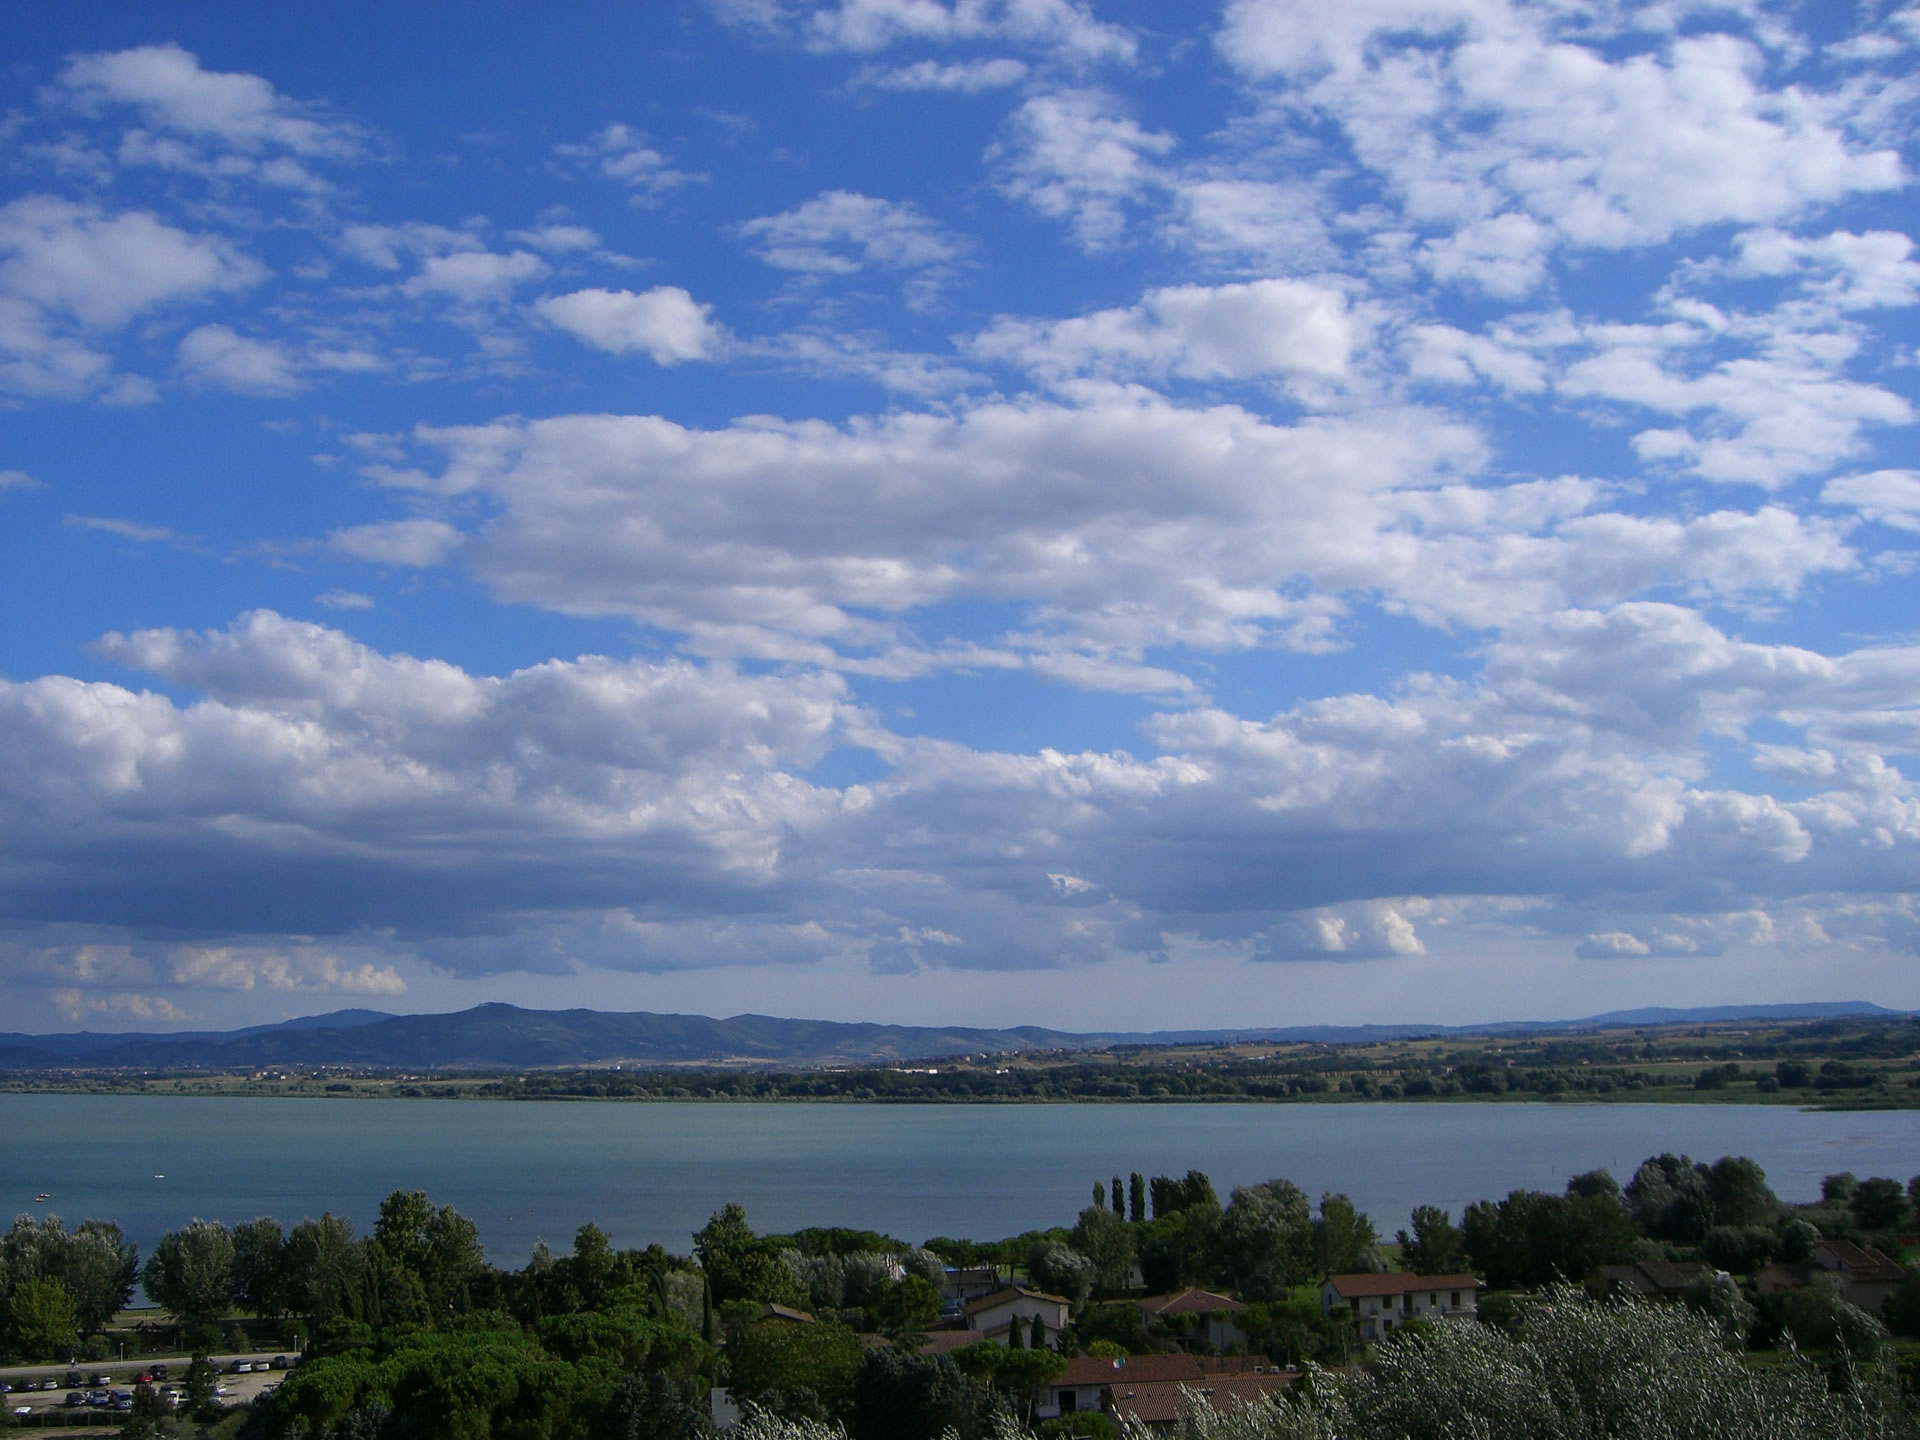 A weekend on the lakeshore: between Orvieto and Lake Trasimeno